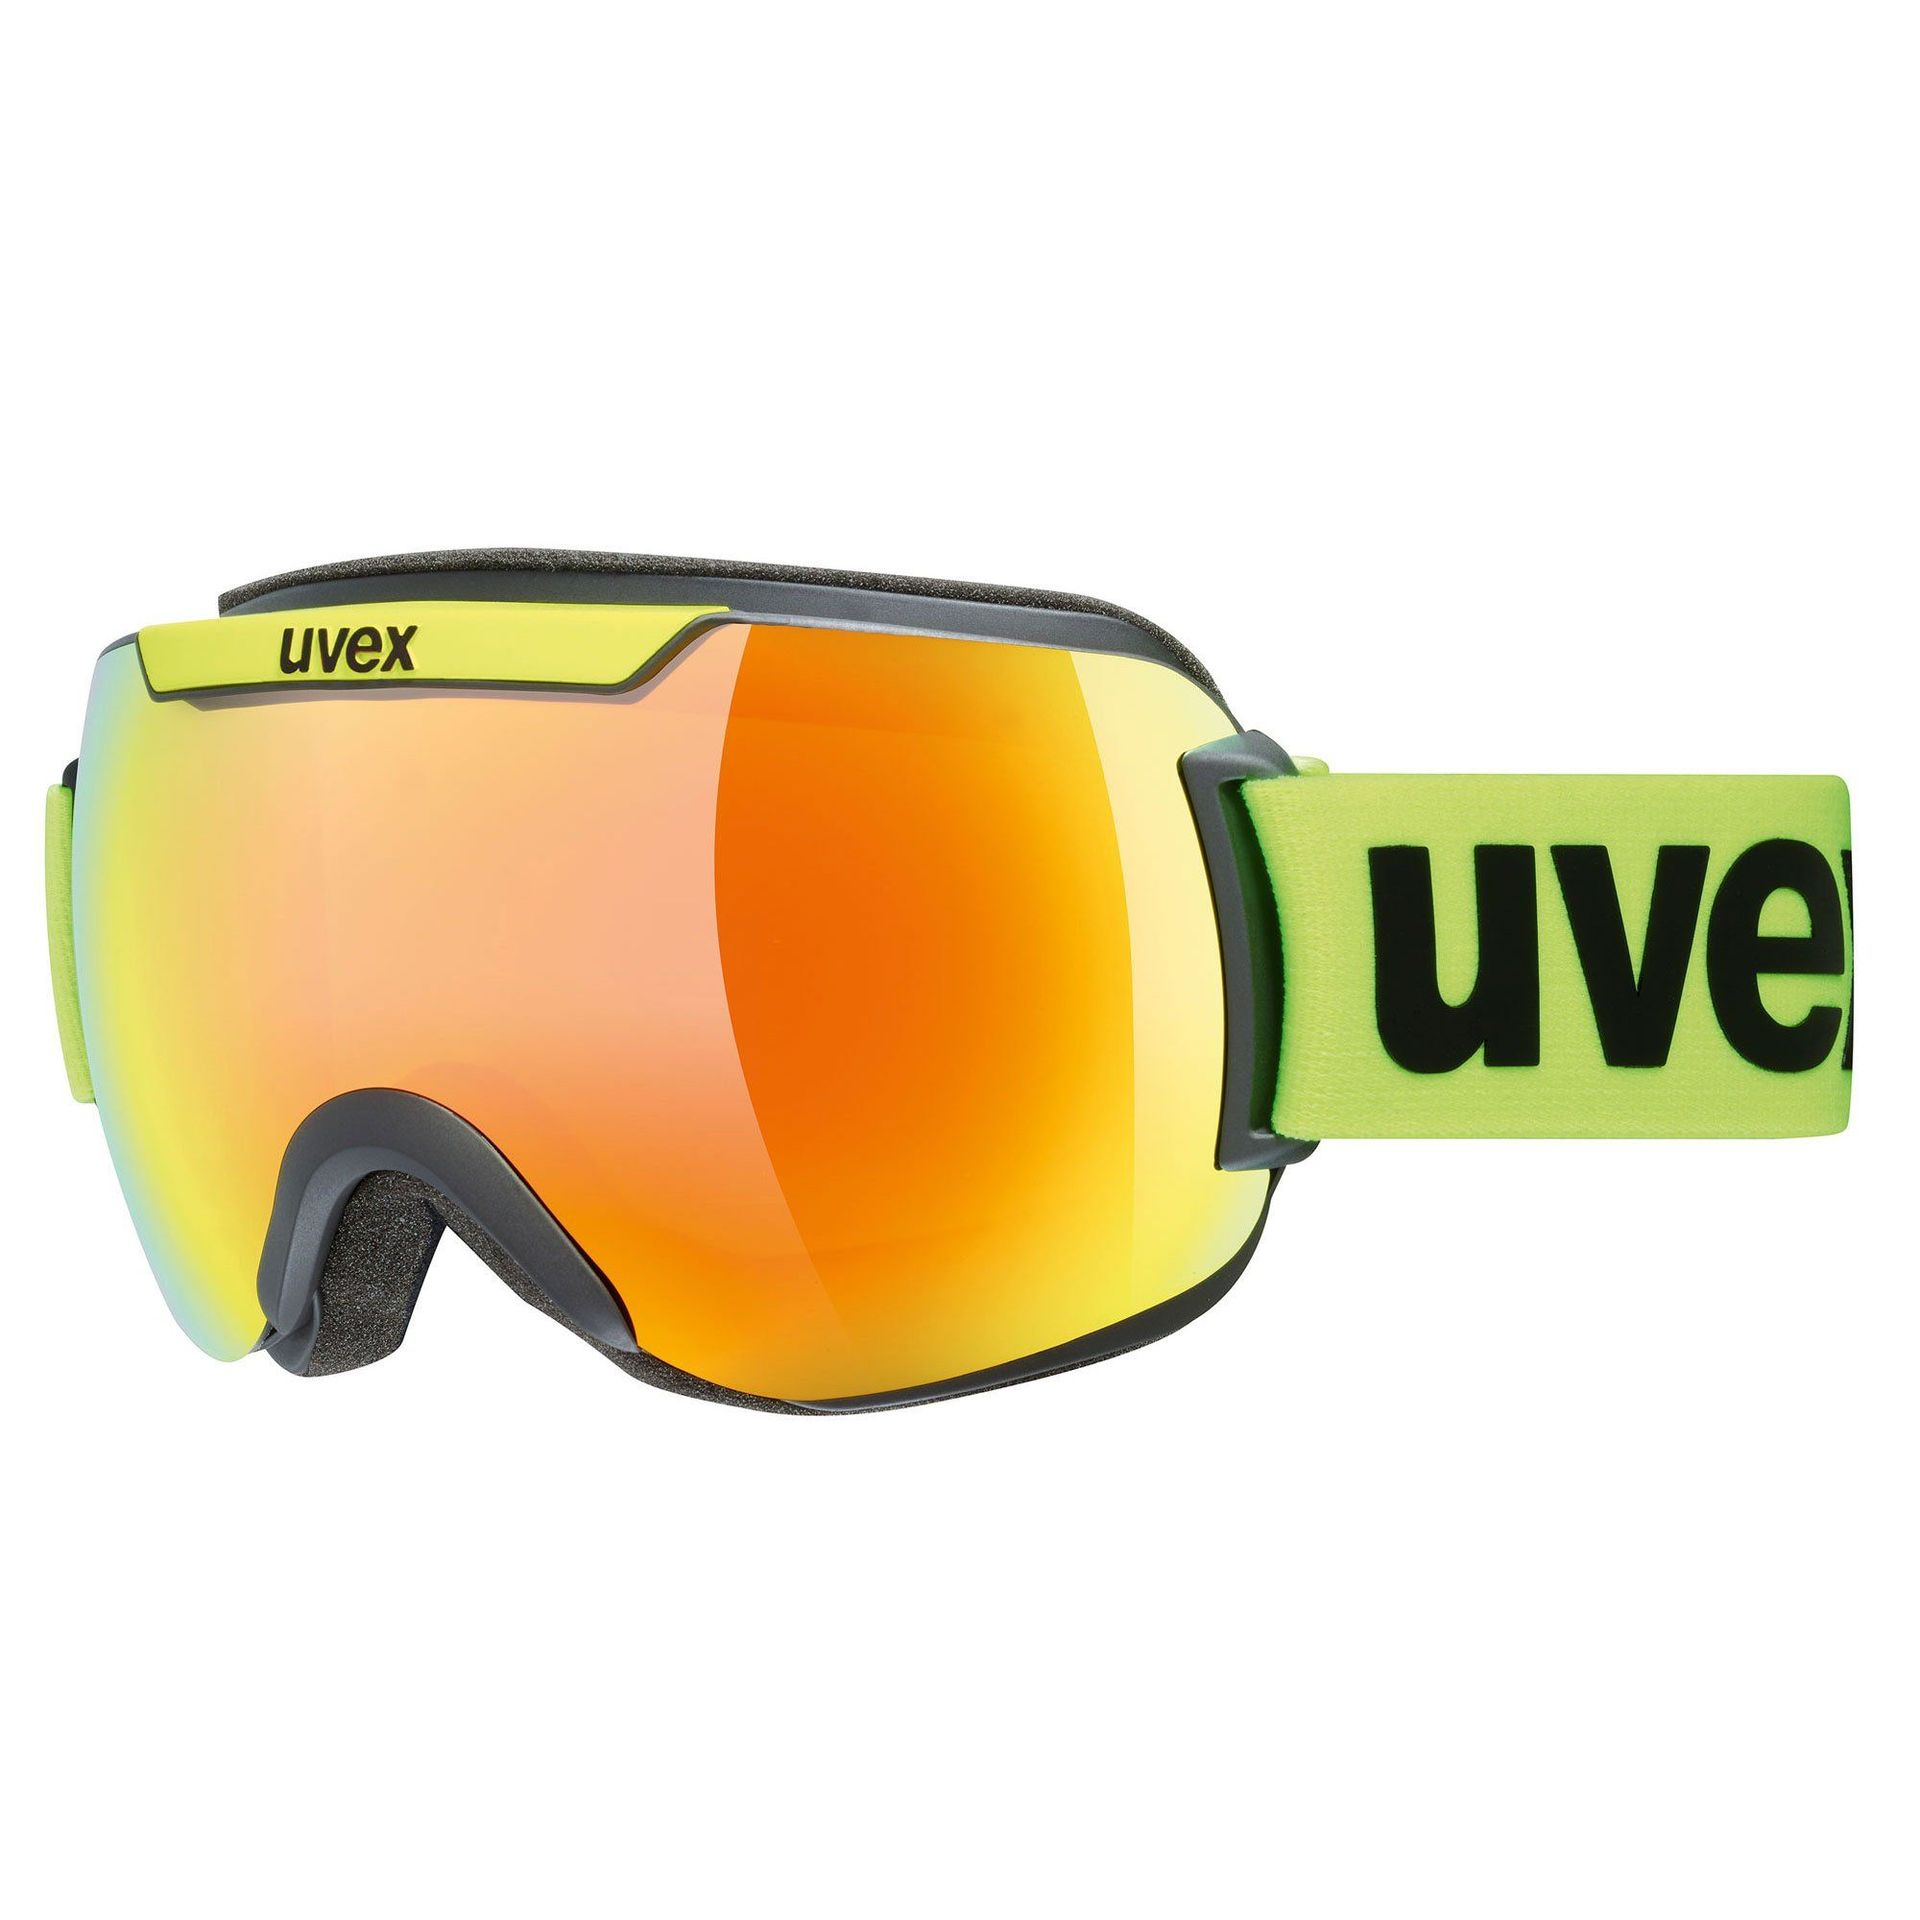 GOGLE UVEX DOWNHILL 2000 CV YELLOW LIME MAT|MIRROR ORANGE COLORVISION GREEN 55|0|117|3030